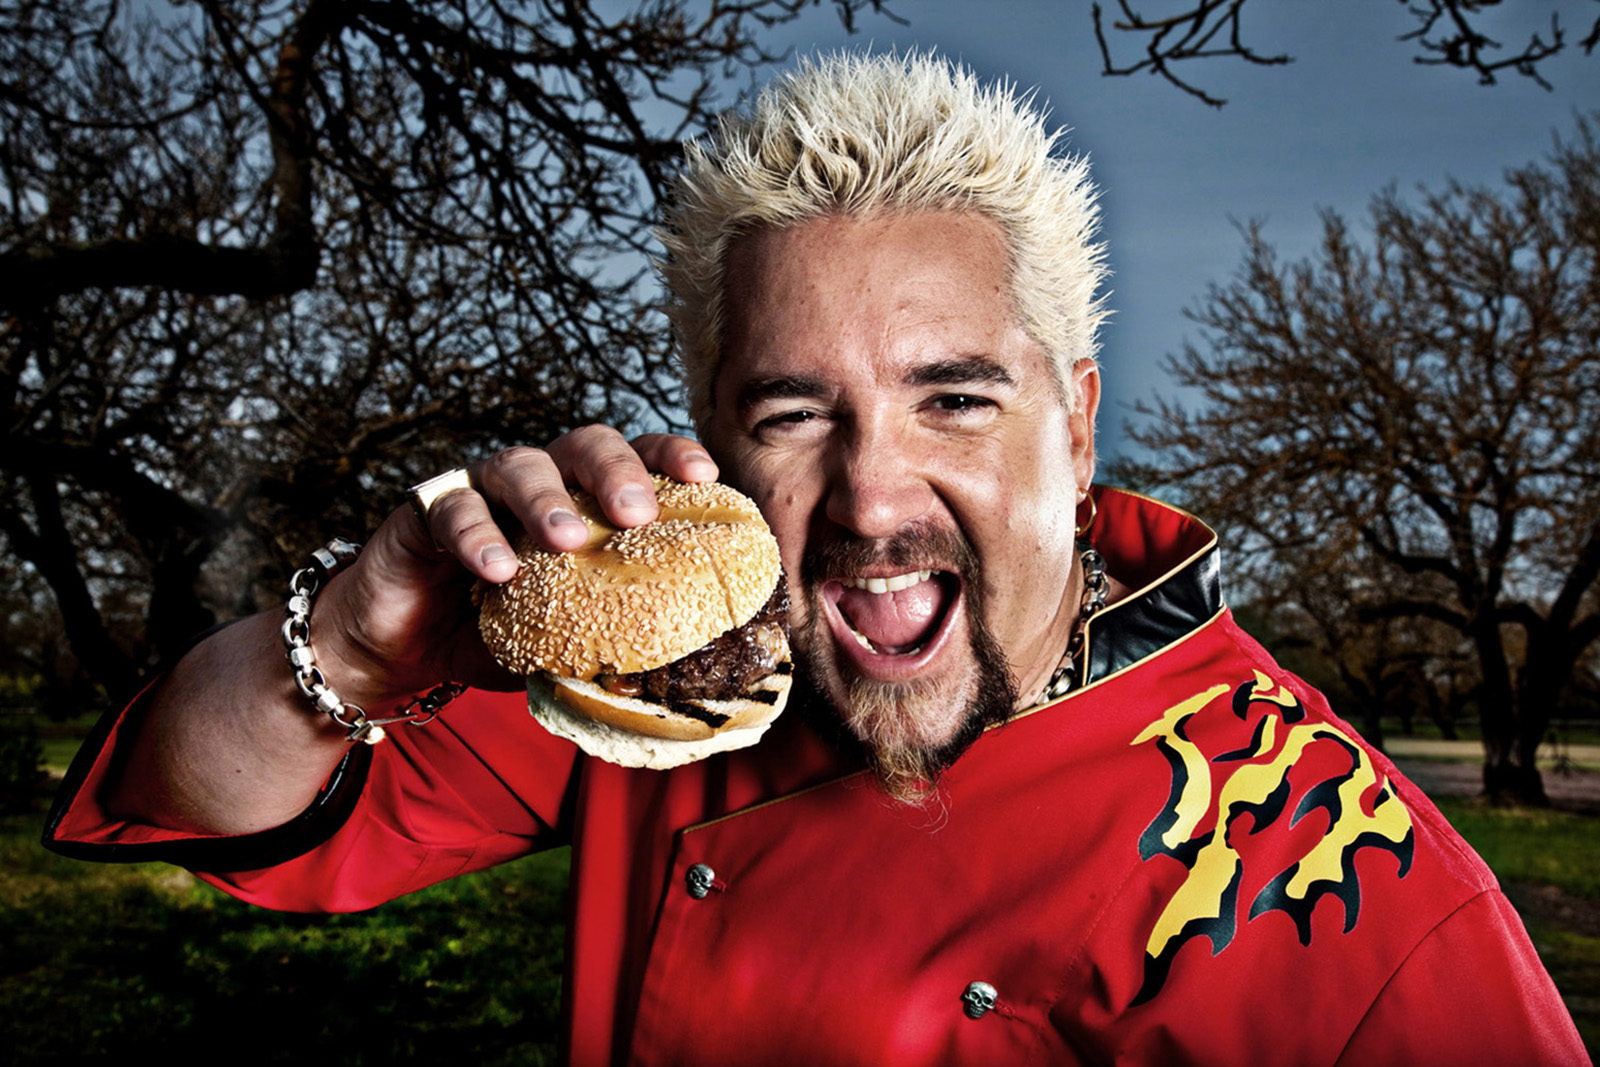 MANUELLO PAGANELLI  Photographer  / PORTRAITS, EDITORIAL, CELEBRITIES / SPORTS , TRAVEL, ADVENTURE / LIFESTYLE, FASHION /MAGAZINE, WORKSHOPS - HOLLYWOOD, SAN FRANCISCO, LOS ANGELES California - PORTRAIT -TV Top Chef Guy Fieri